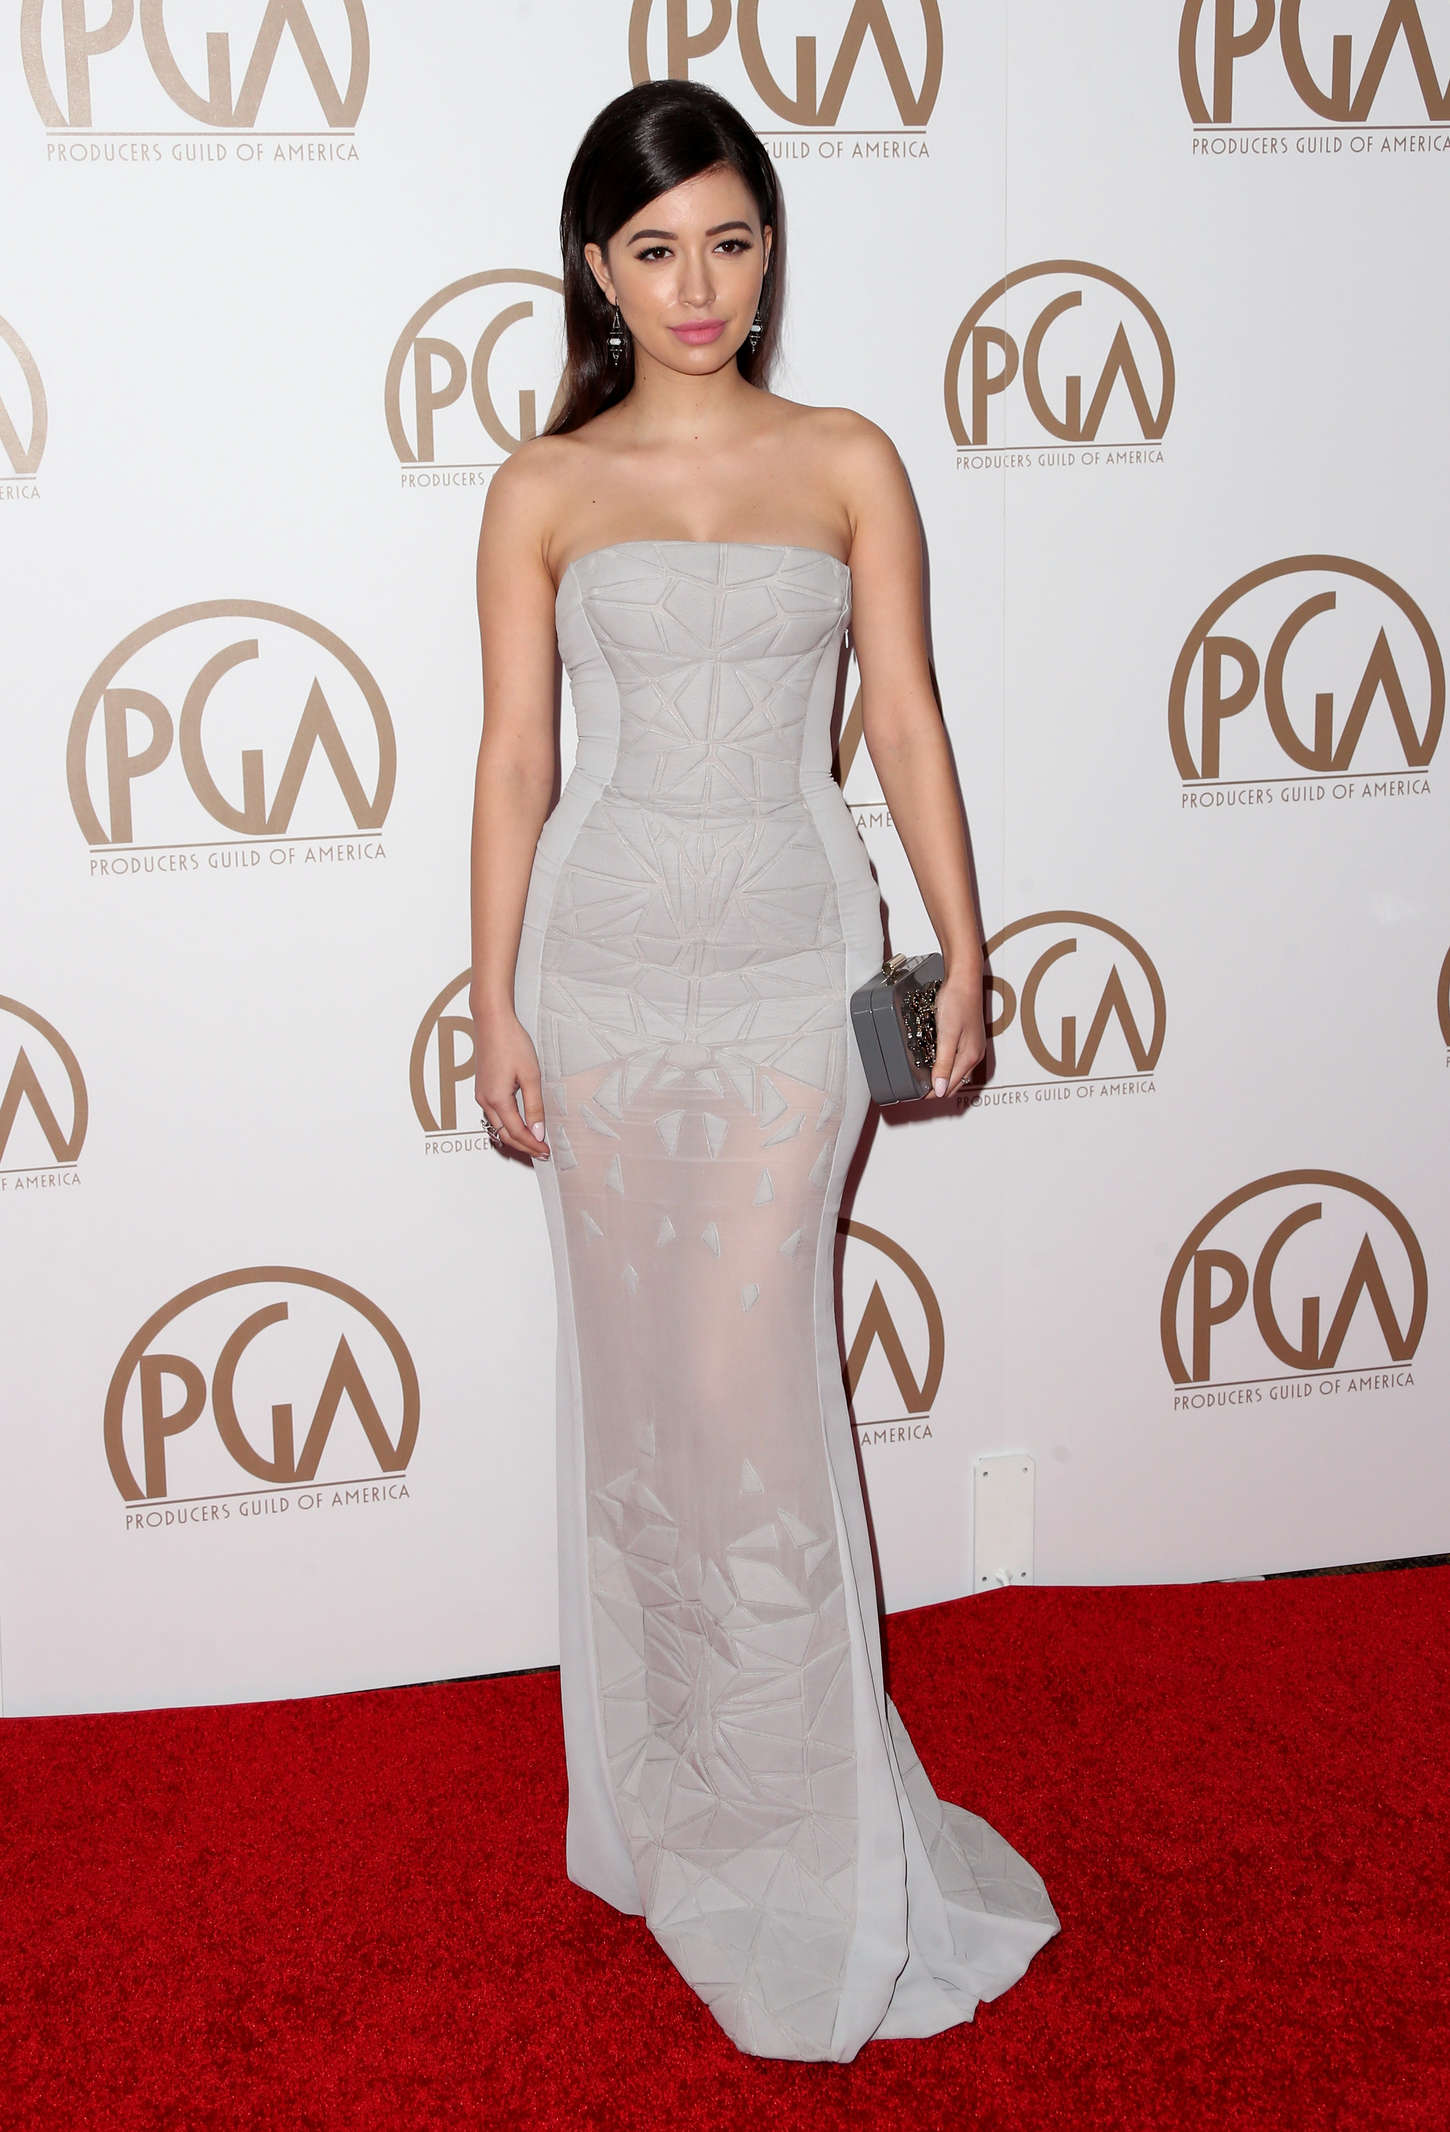 Christian Serratos Annual Producers Guild Of America Awards in Los Angeles